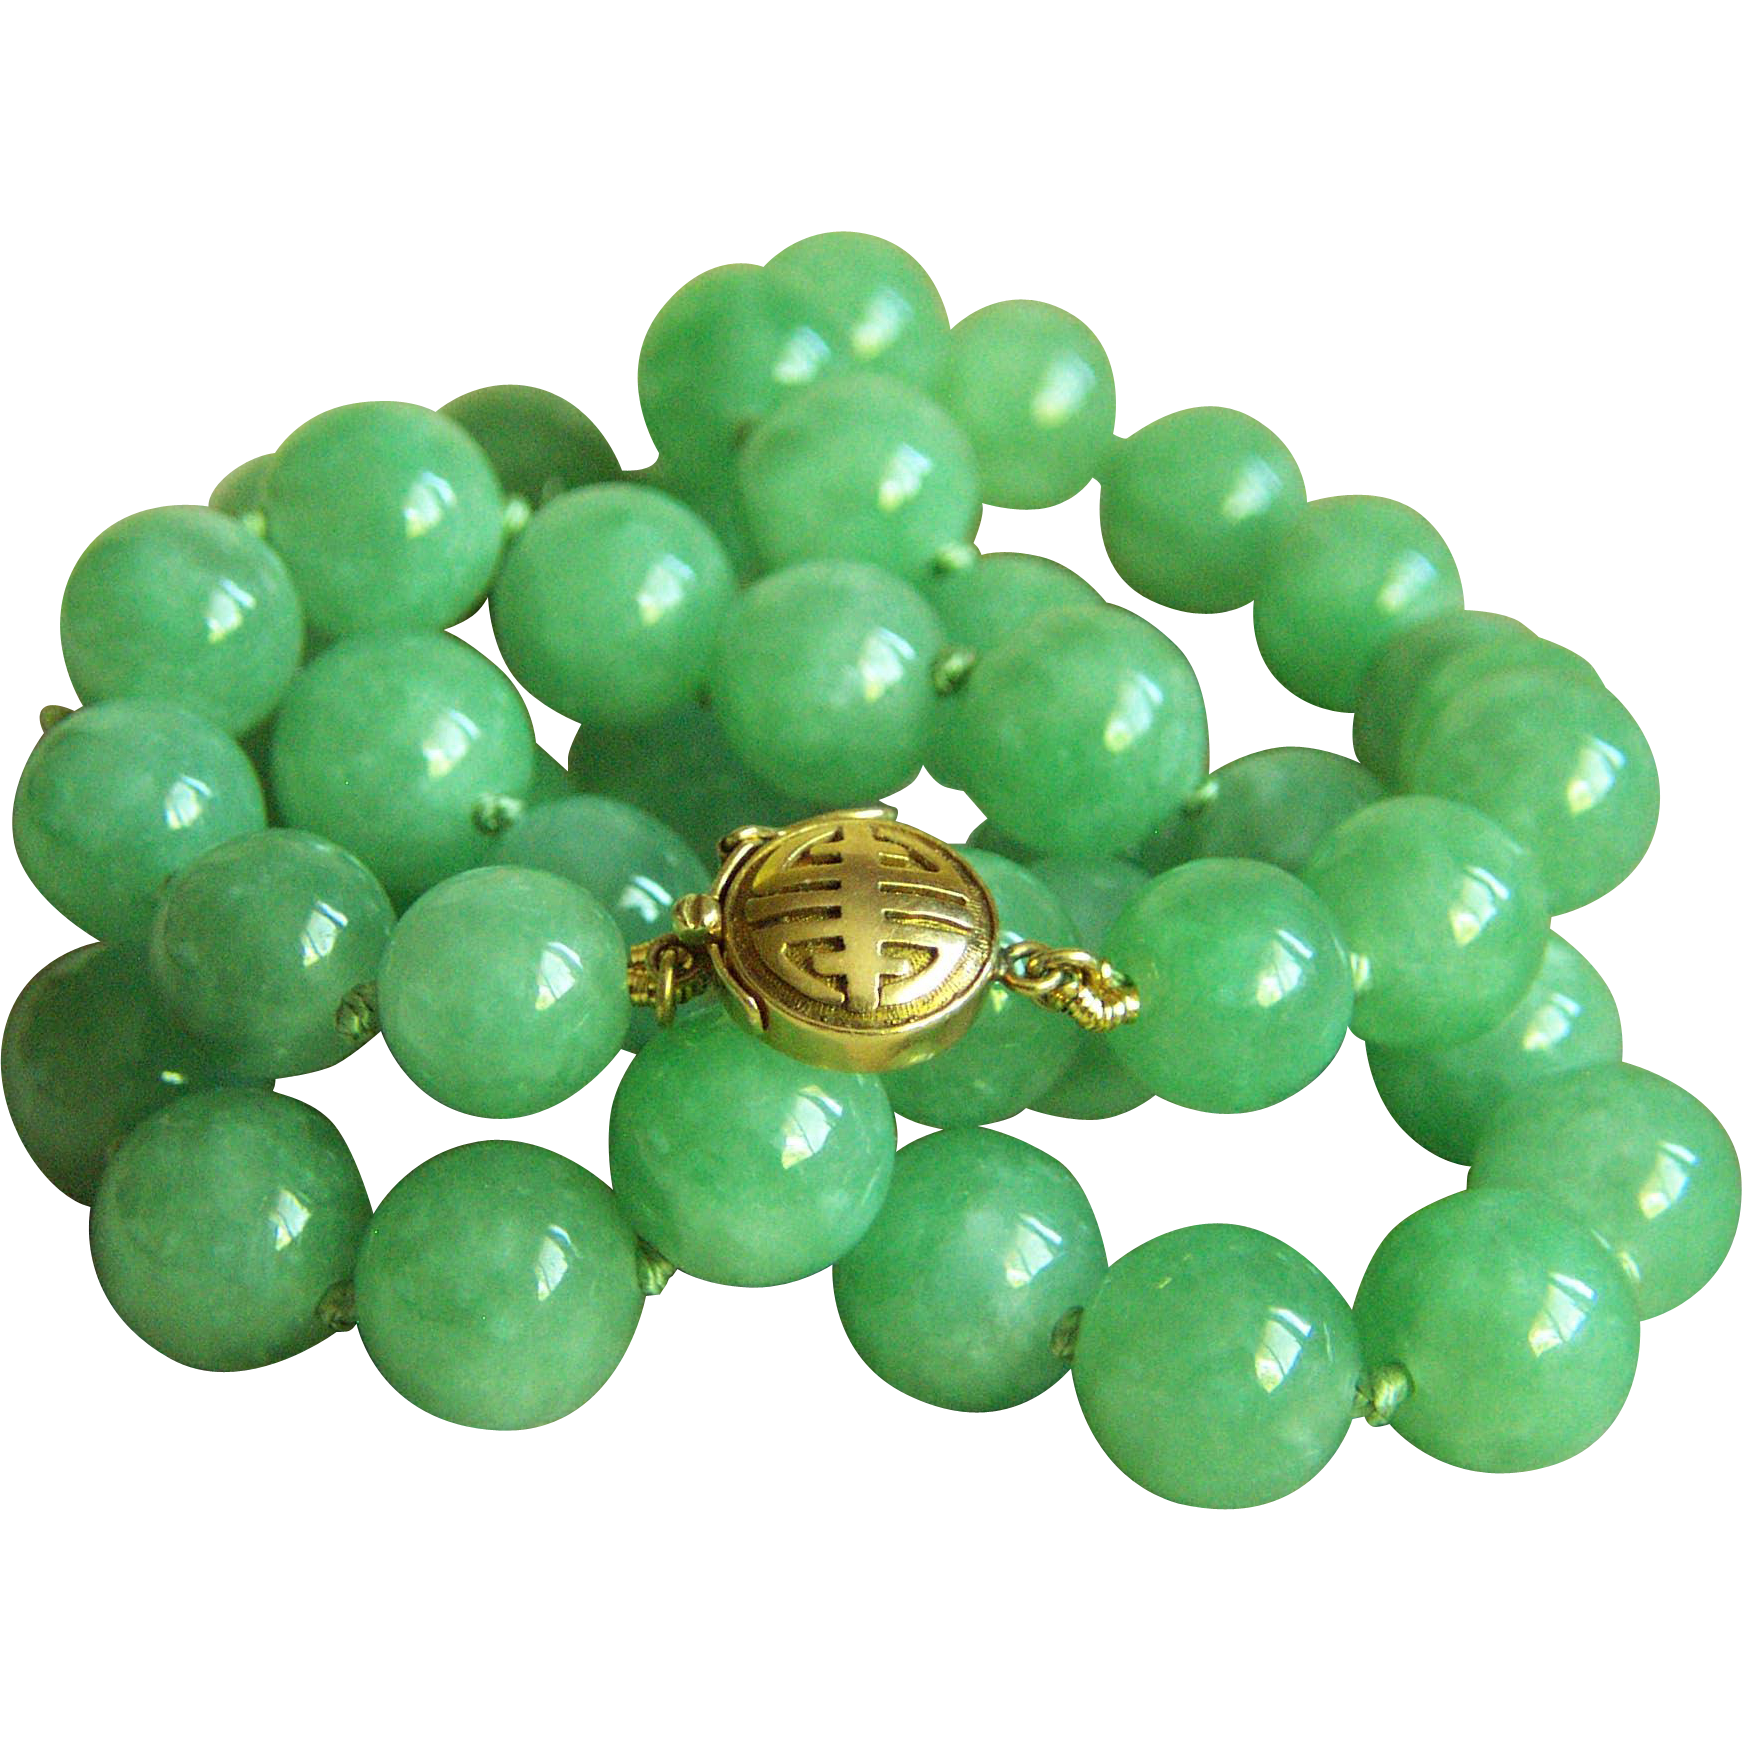 grpr for jade gemstone prehnite living necklace livinggreen green healthy therapy product gemformulas nephrite